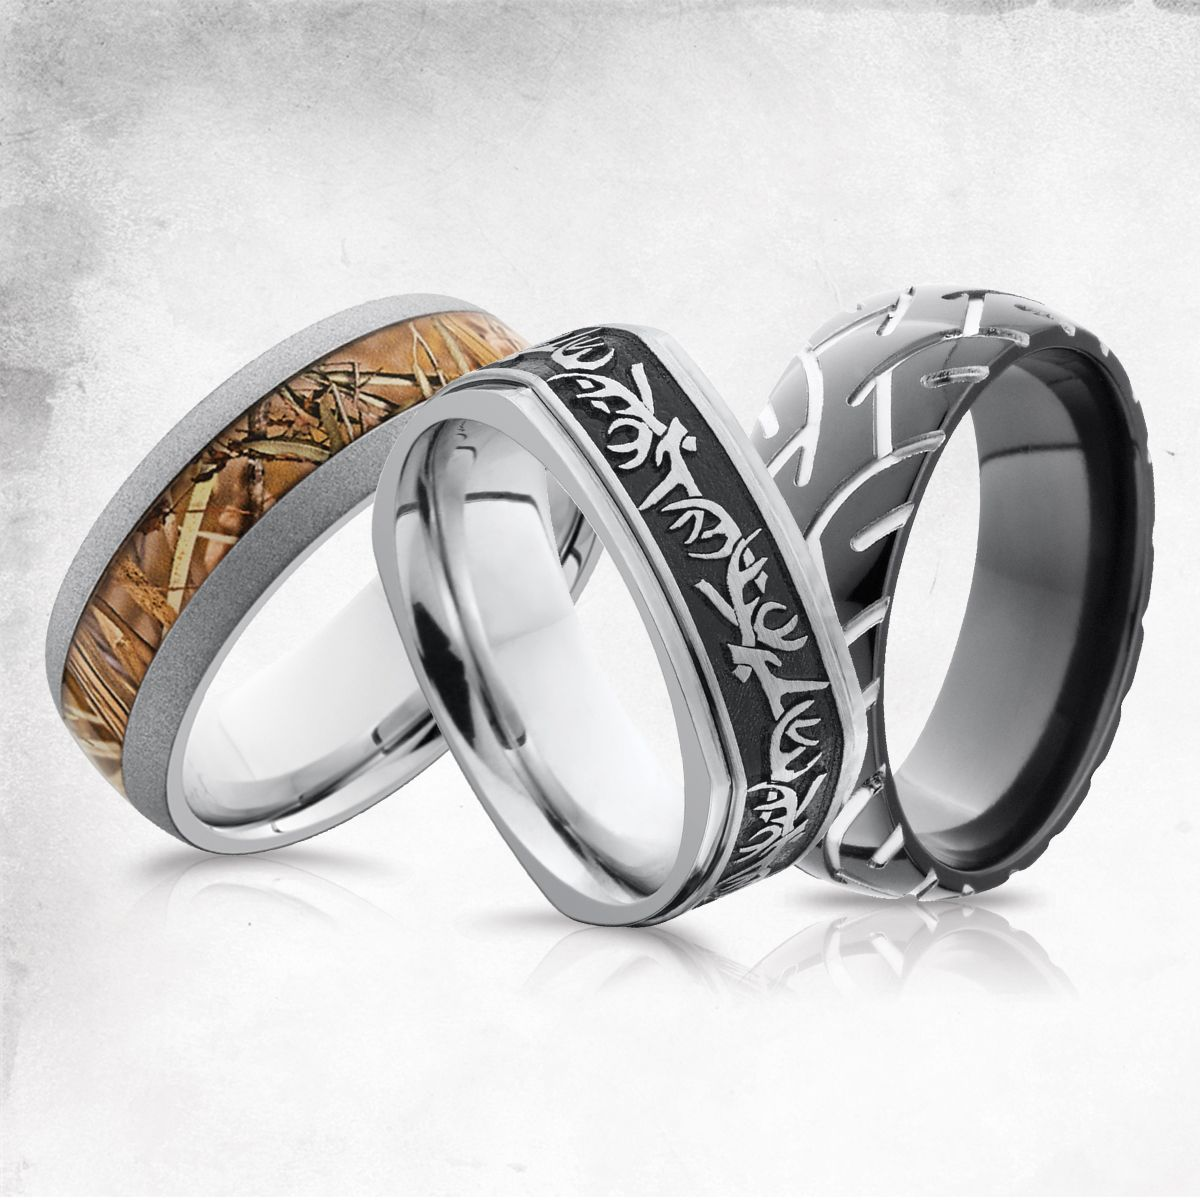 hunting camo and tire tracks mens wedding bands mens wedding rings - Camo Wedding Rings Sets